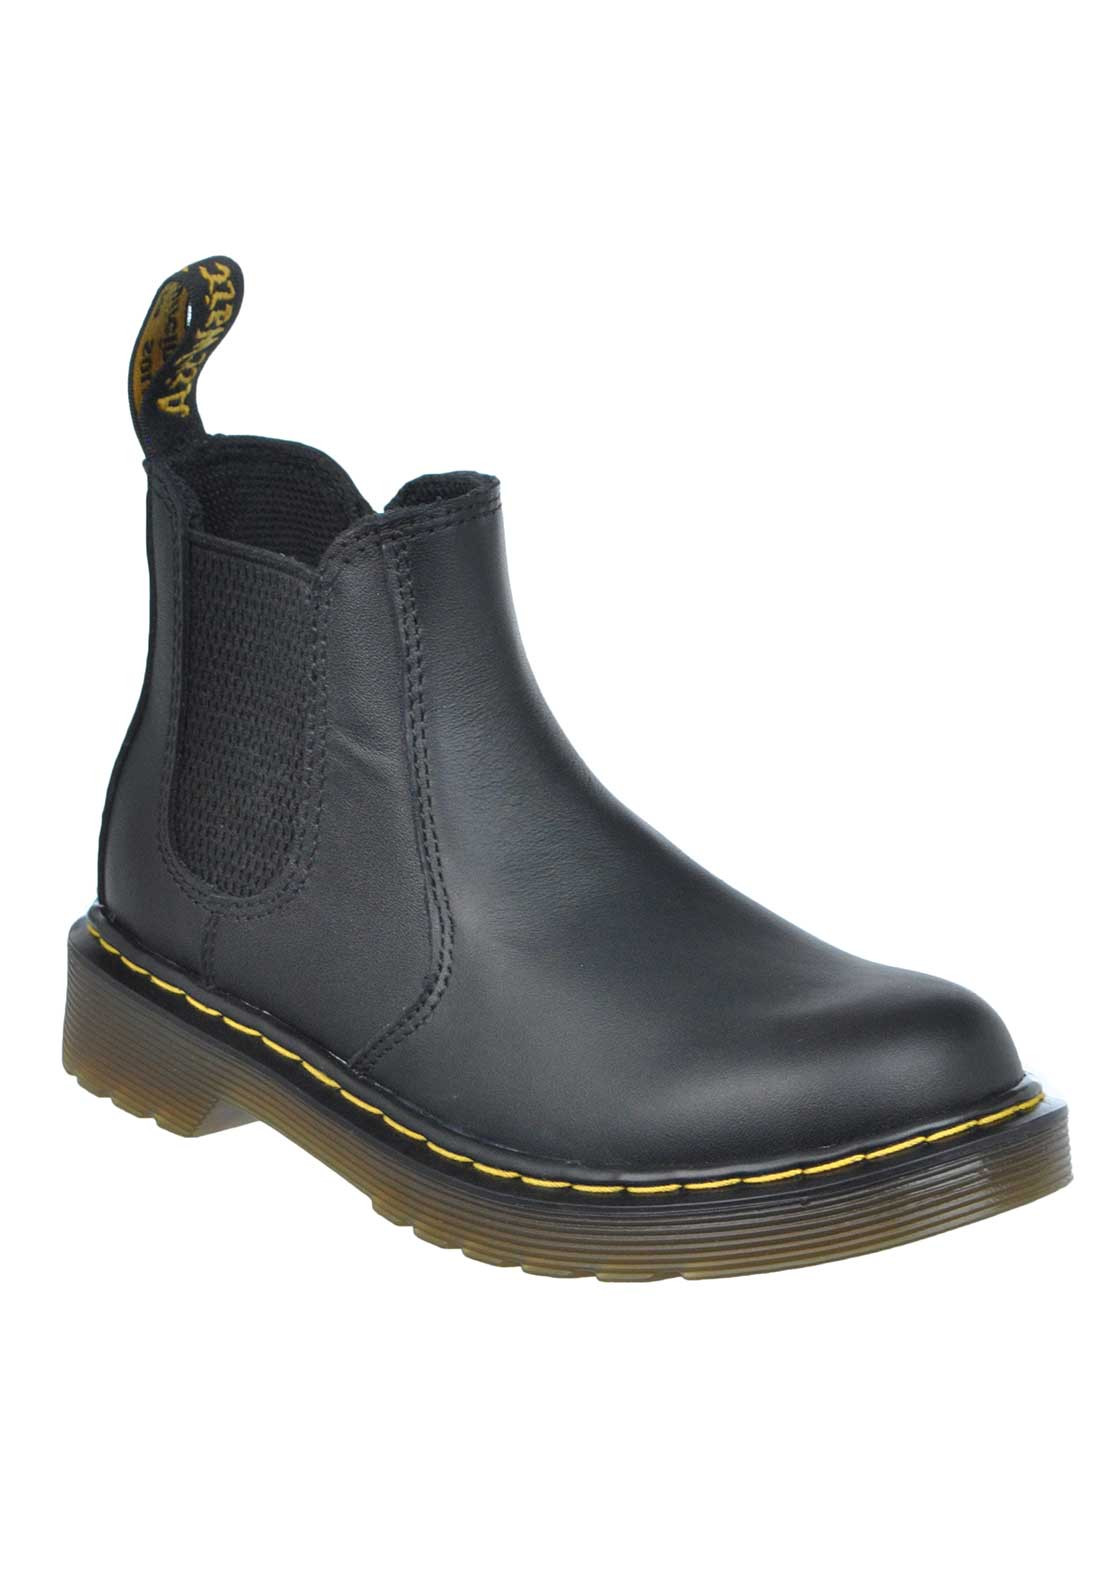 Dr. Martens AirWair Kids Leather Ankle Boots, Black